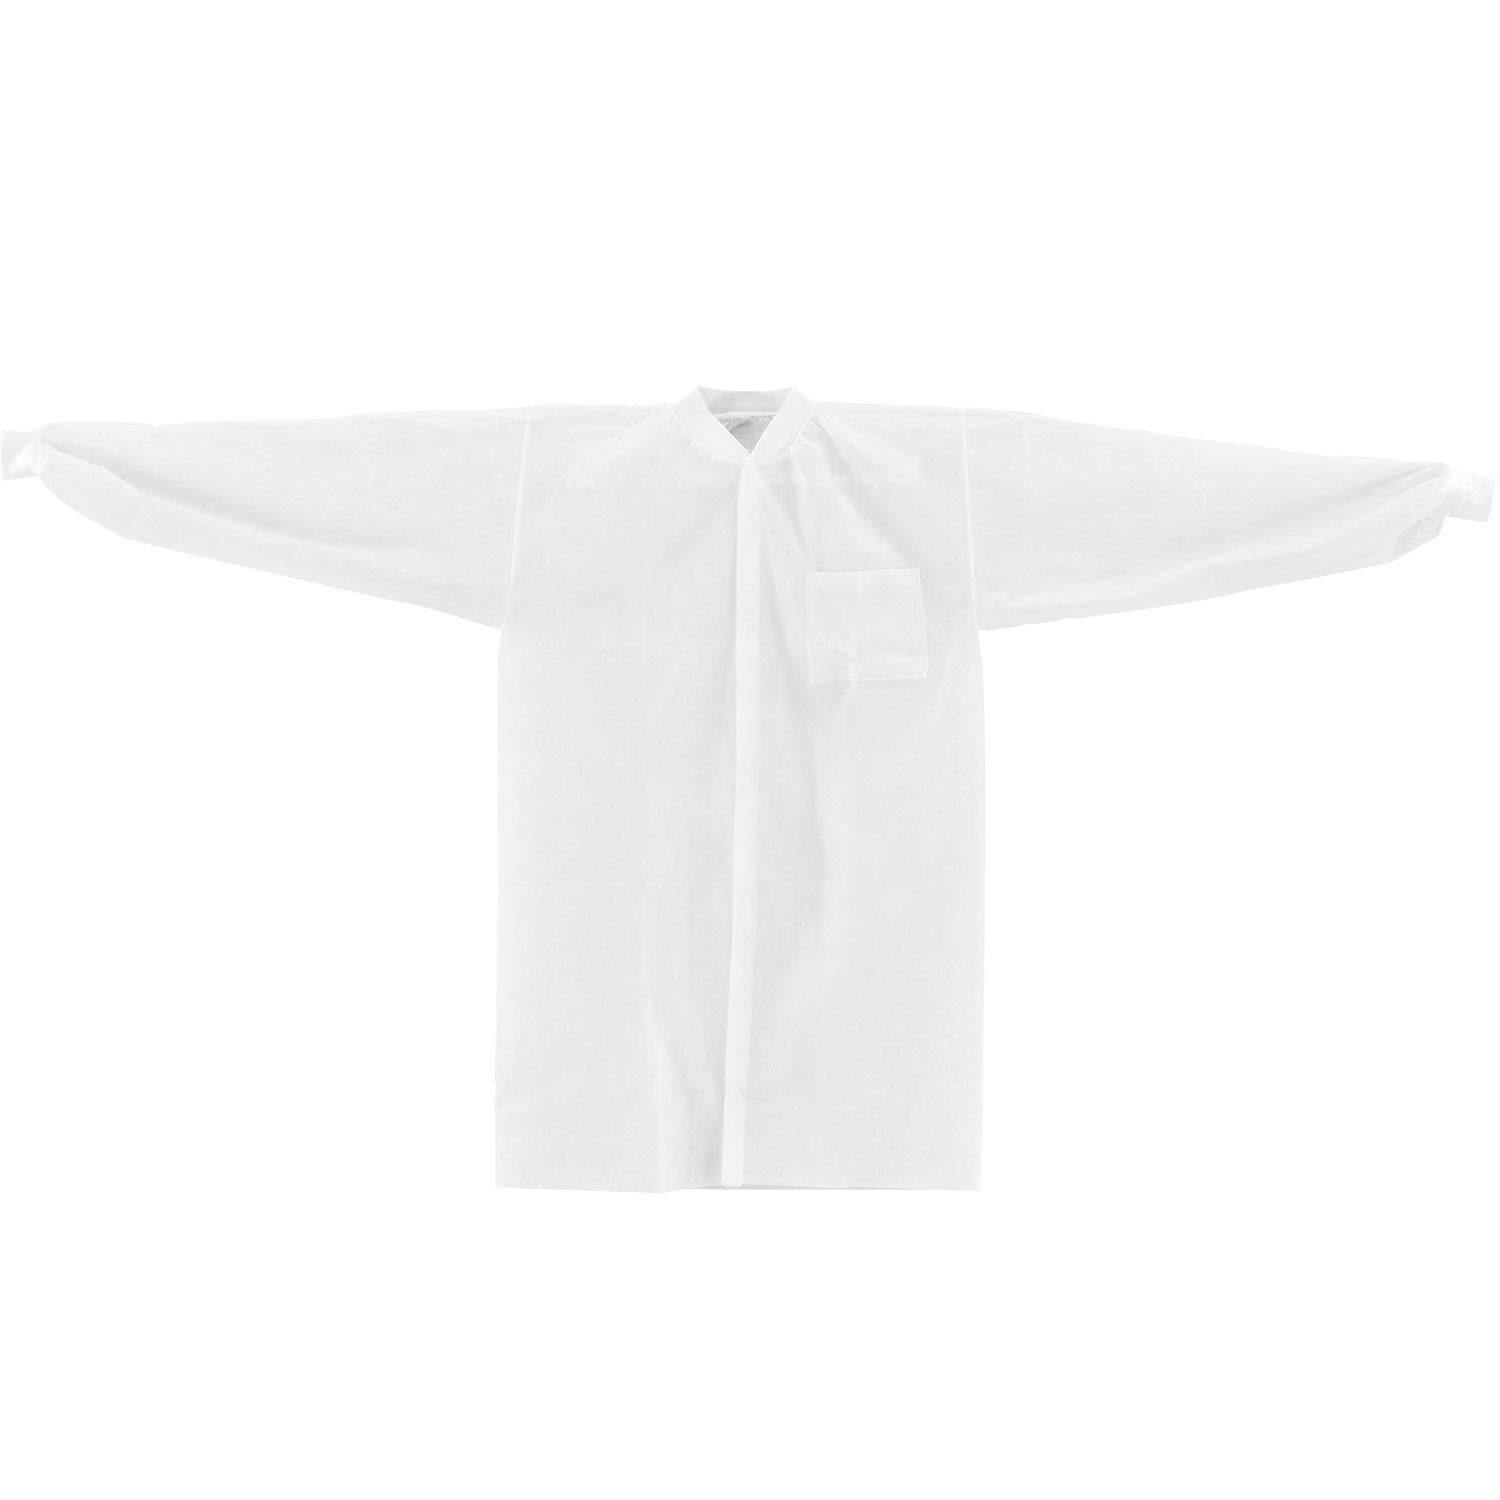 White Disposable Polypropylene Lab Coat - 1 Pocket, Knit Wrist & Collar, Snap Closure, 39'' x 28'', 2X-Large, Pack of 25 by One Stop Shop